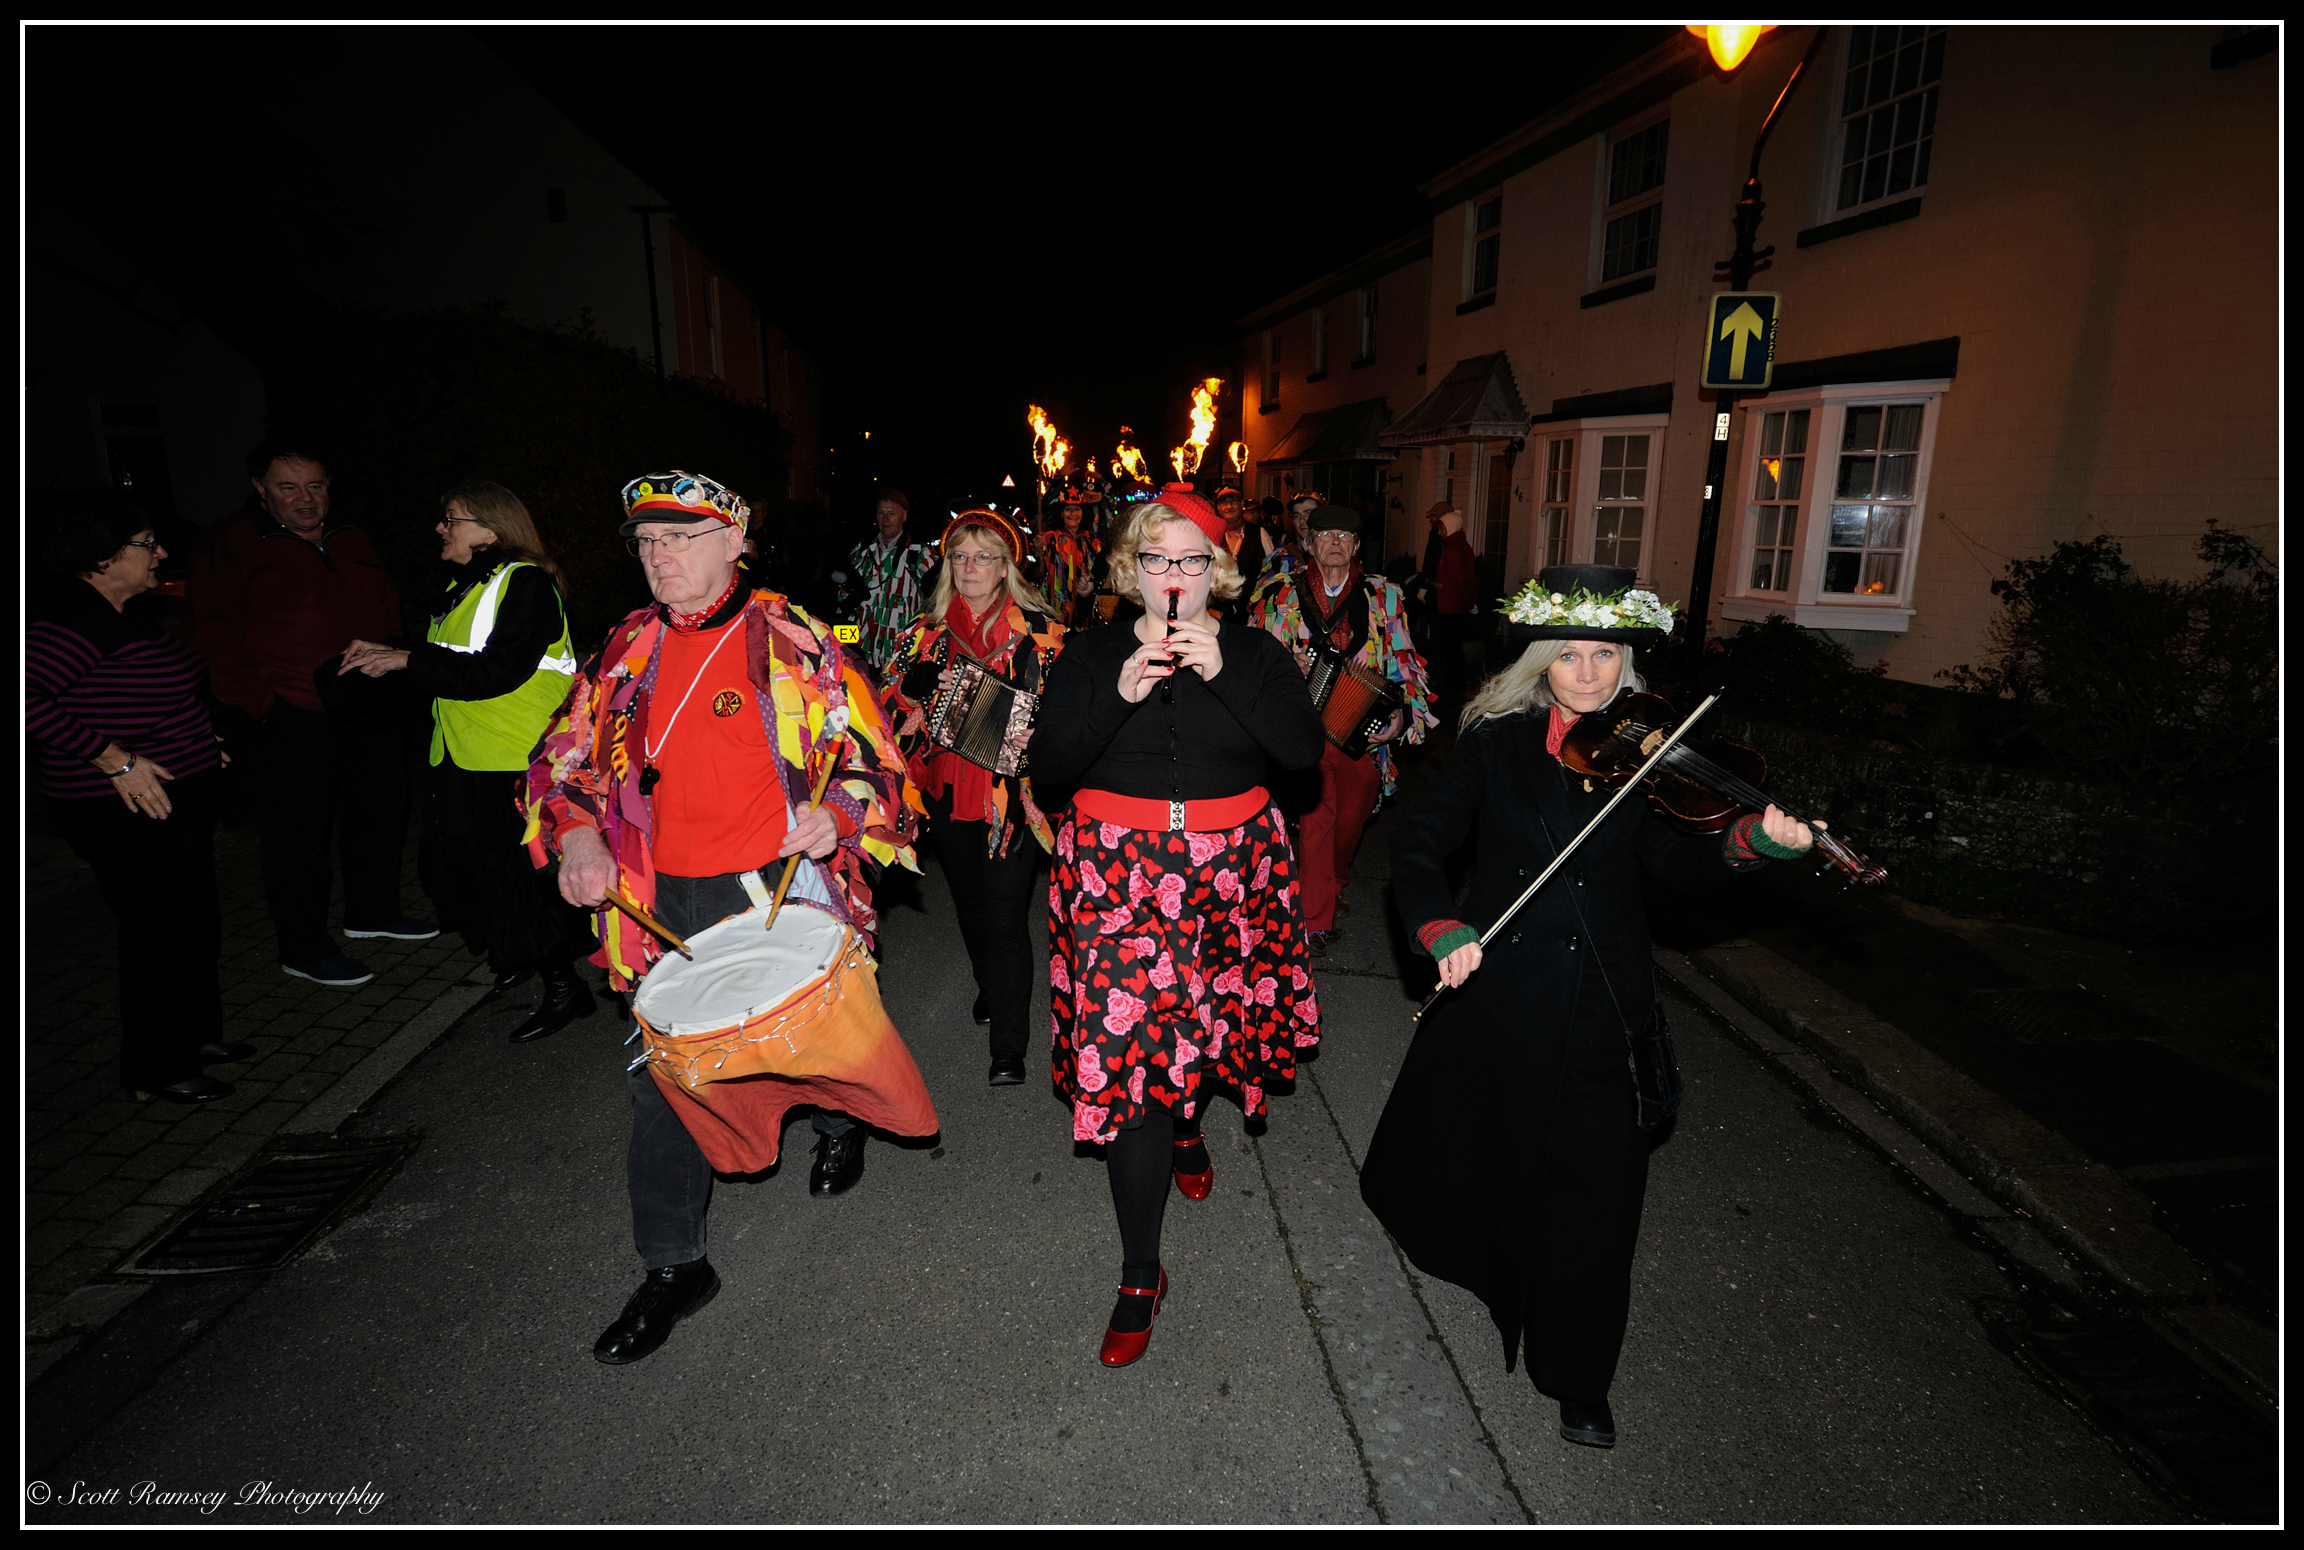 Musicians lead the processionalong Tarring High Street during the Wassail.